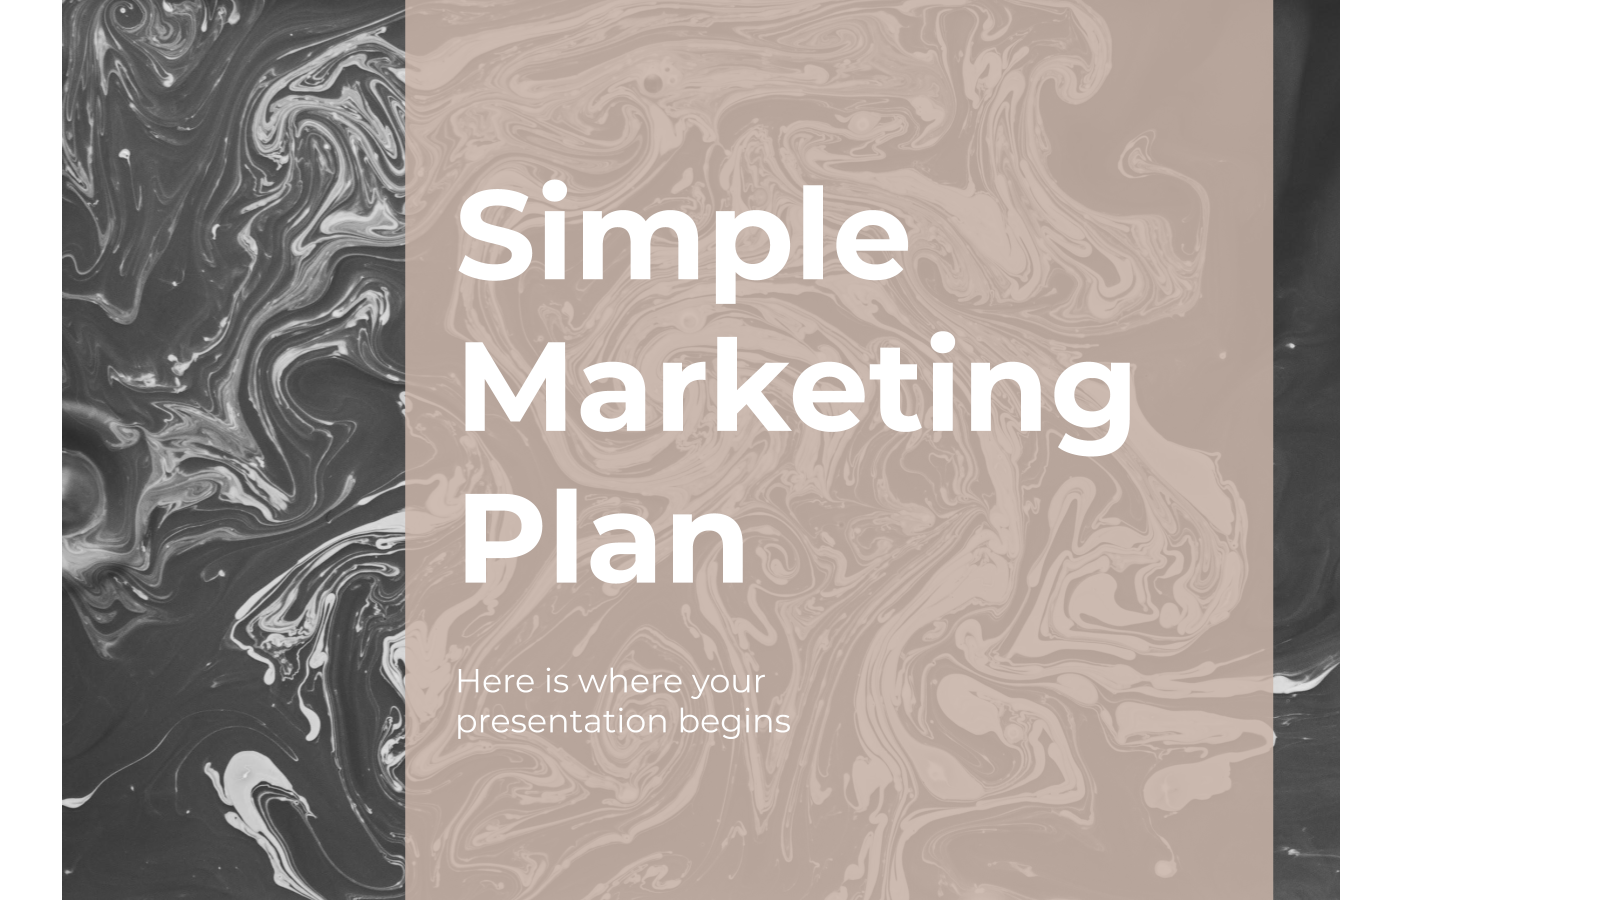 Plan marketing simple : Modèles de présentation